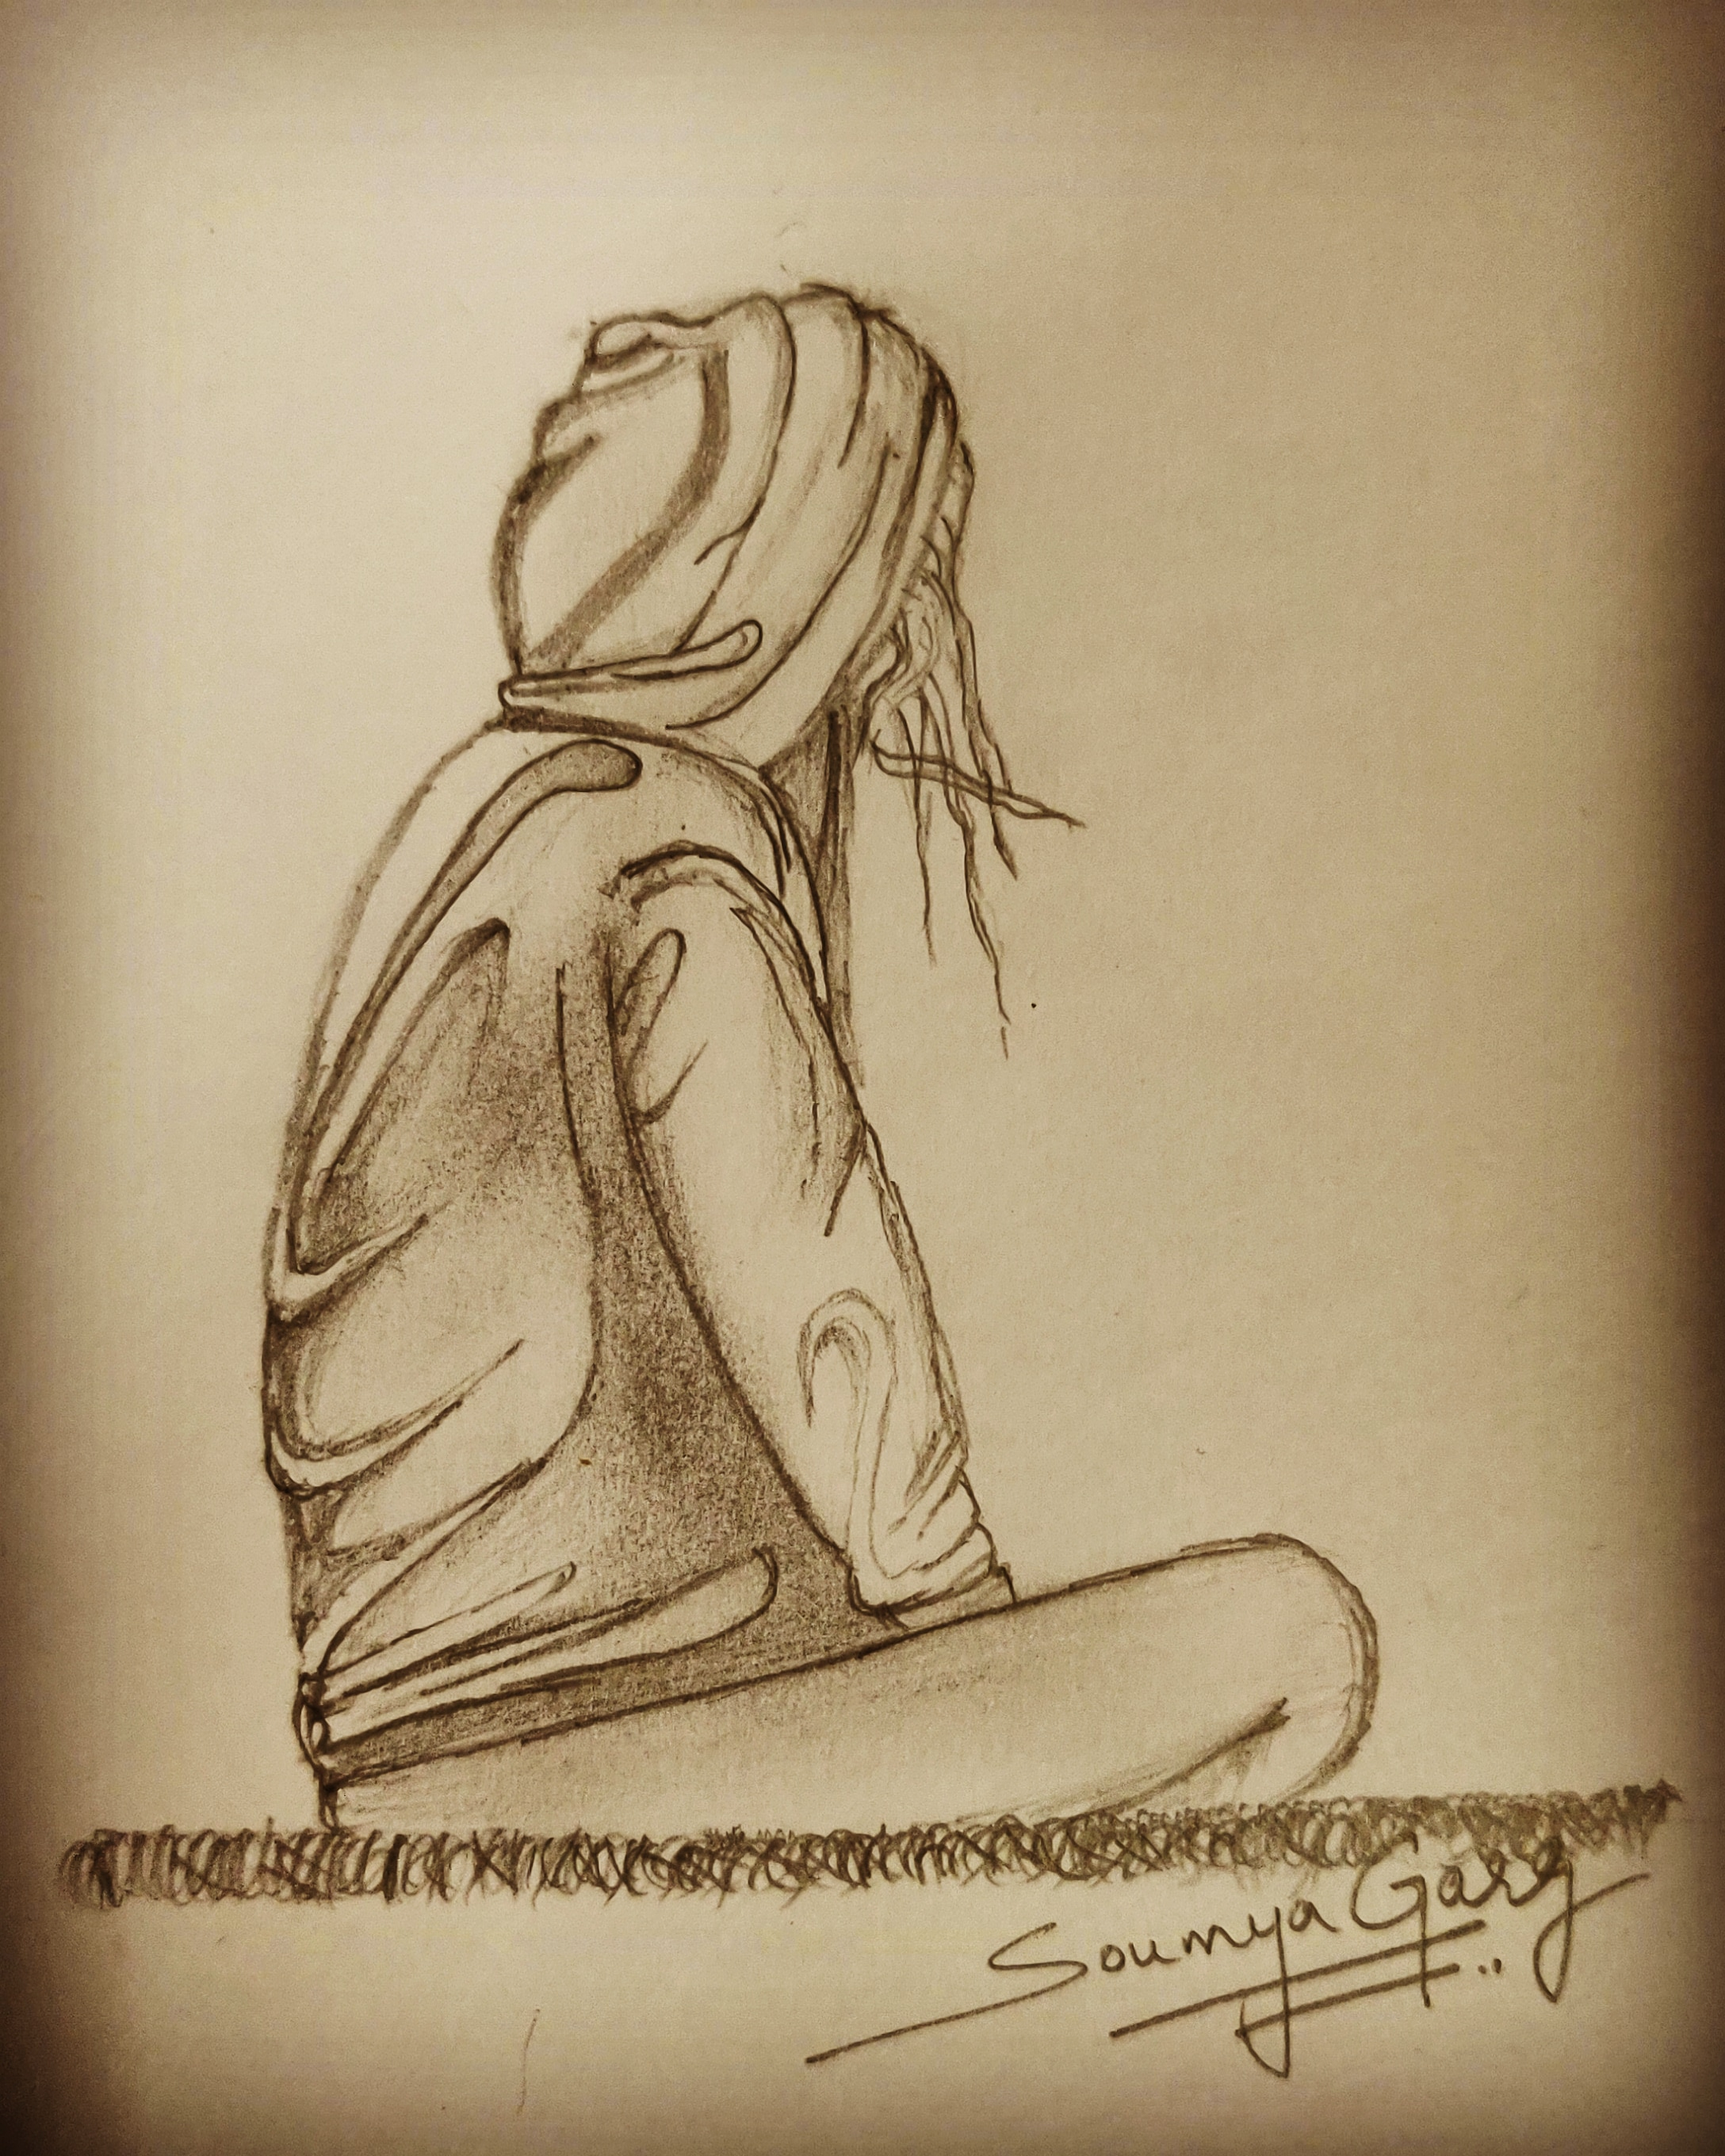 Sketch Of Self - Soumya